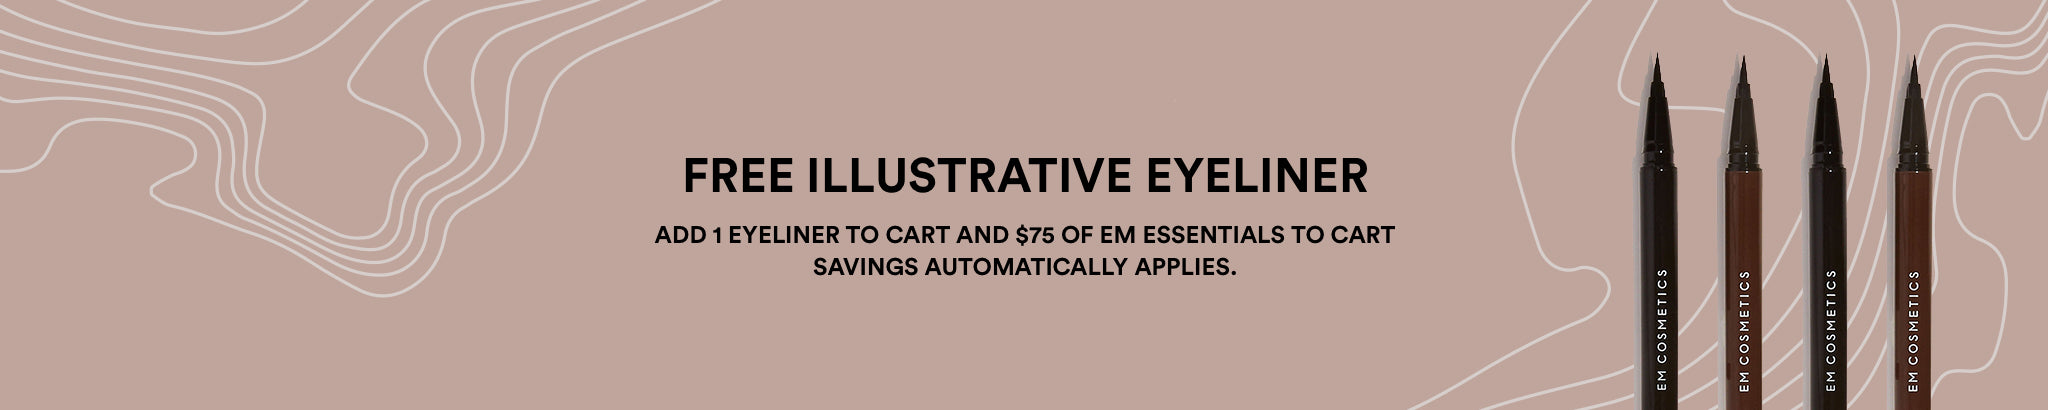 ILLUSTRATIVE EYELINERS